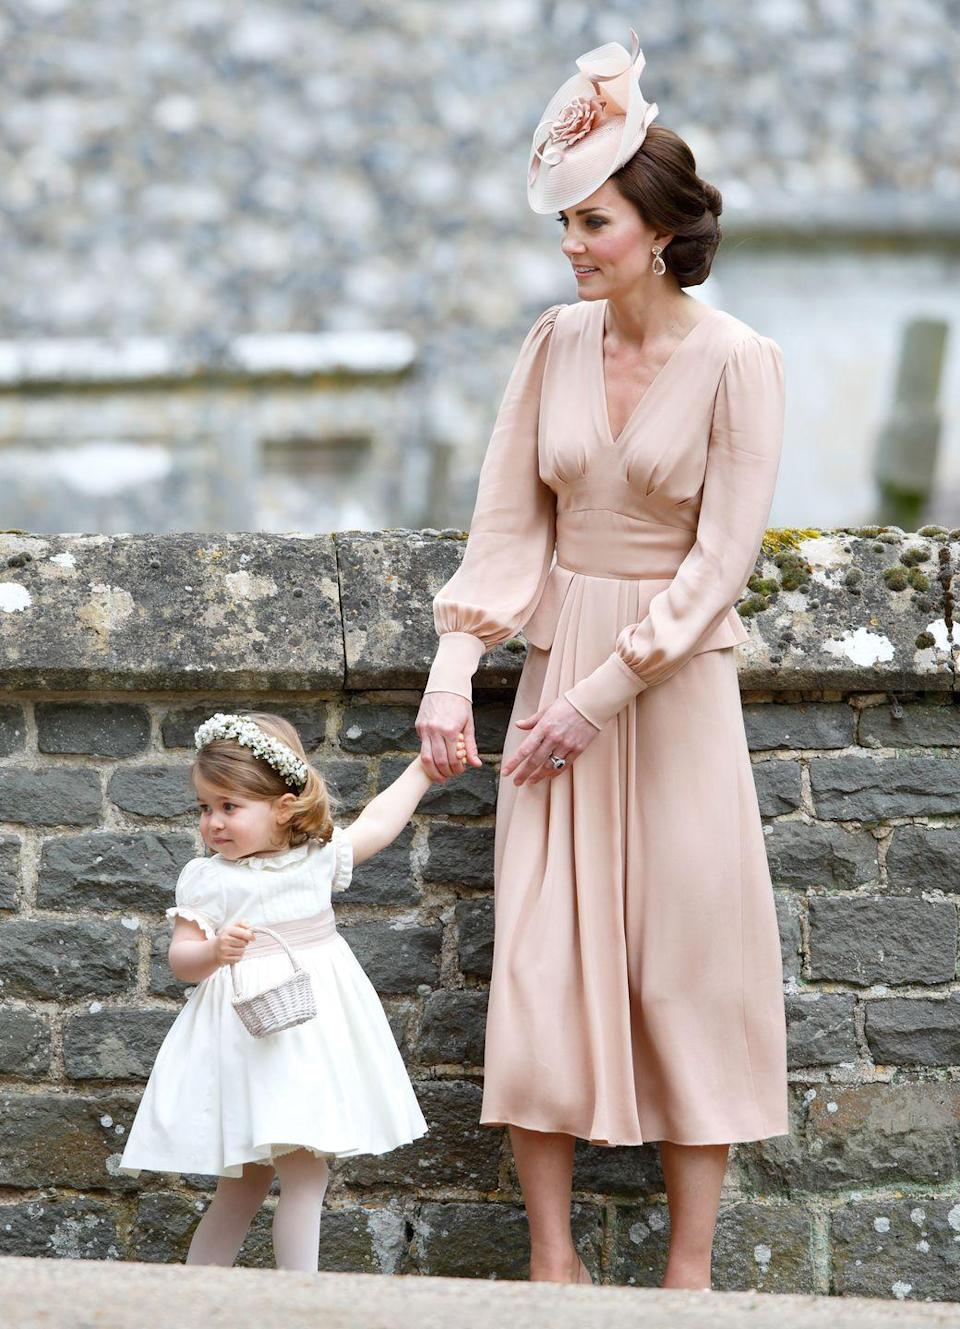 <p>Since Pippa Middleton wore McQueen to Kate's wedding, it seems only fair that the Duchess wore the designer to Pippa's nuptials. Kate paired the elegant dress with a matching fascinator. </p>